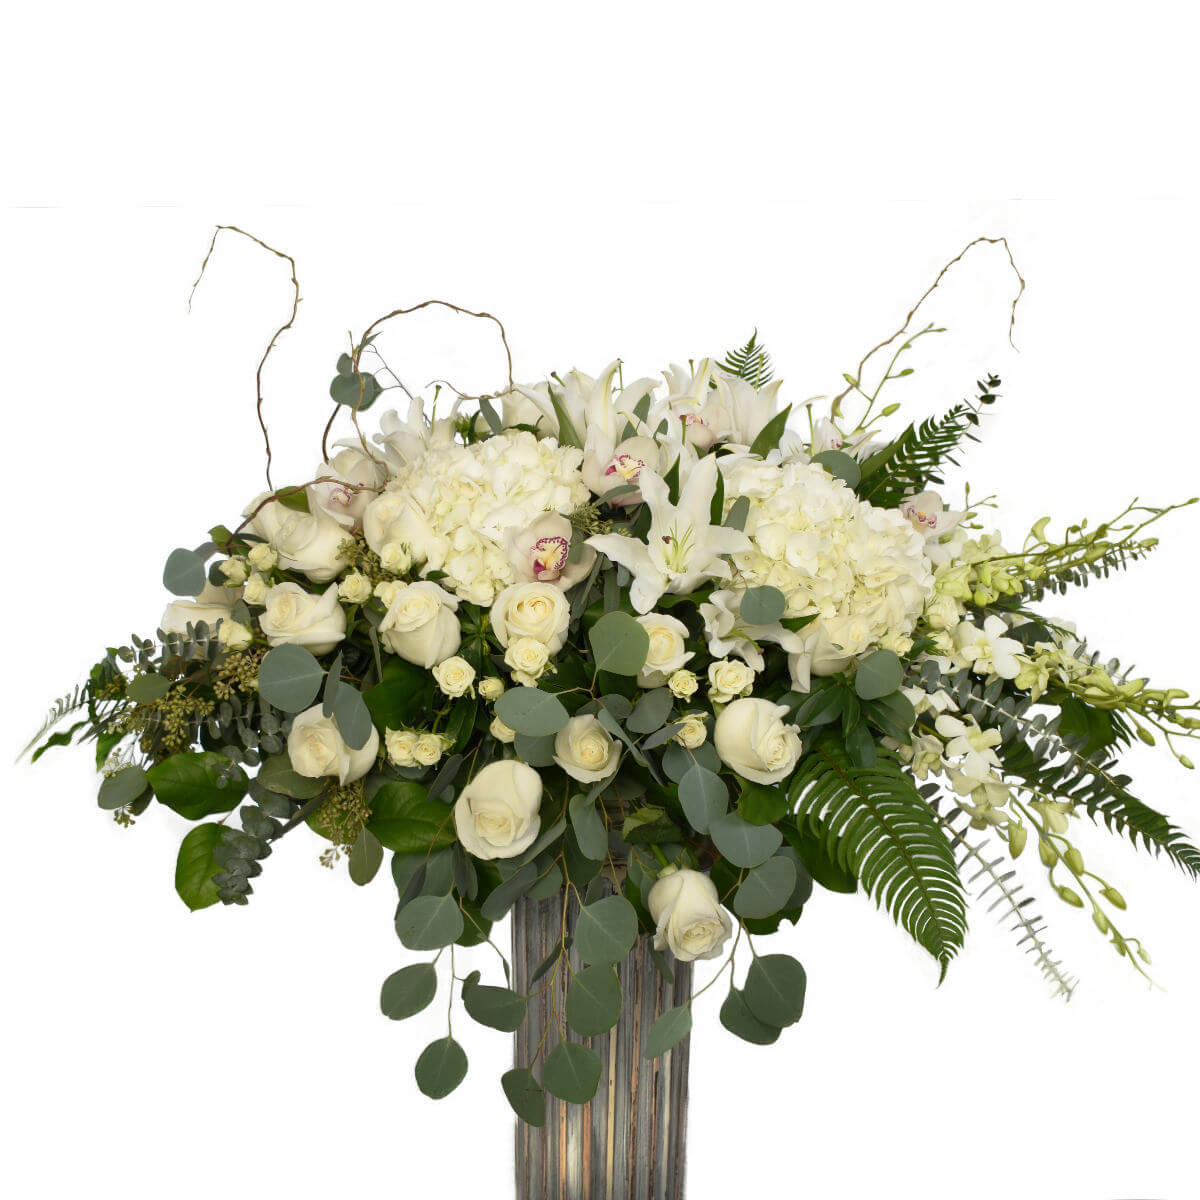 Vancouver Condolence and Funeral Flowers Delivery   Adele Rae Florist